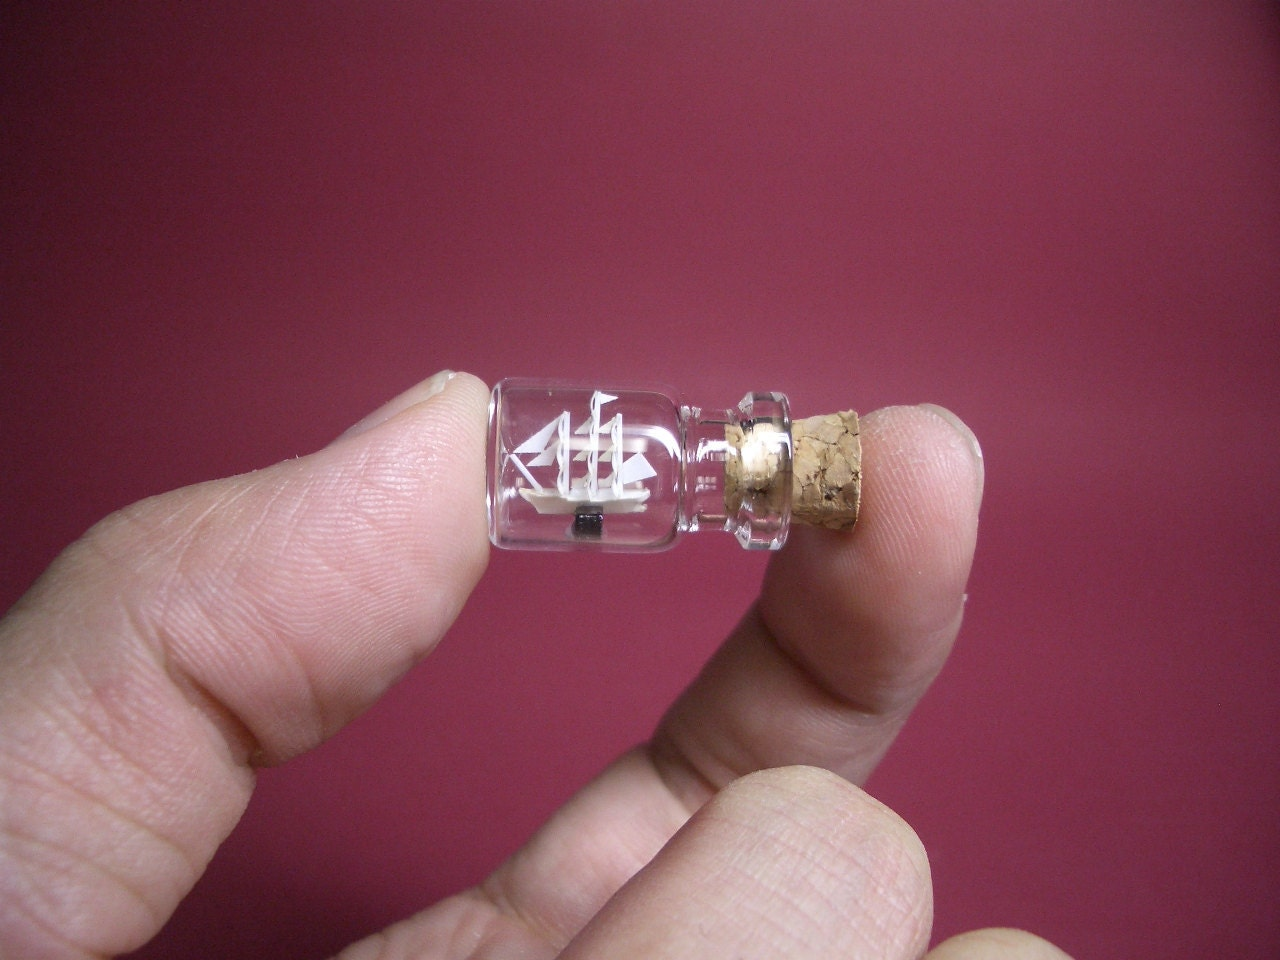 Tiny Sailing Ship is in a tiny bottle Bottle ship